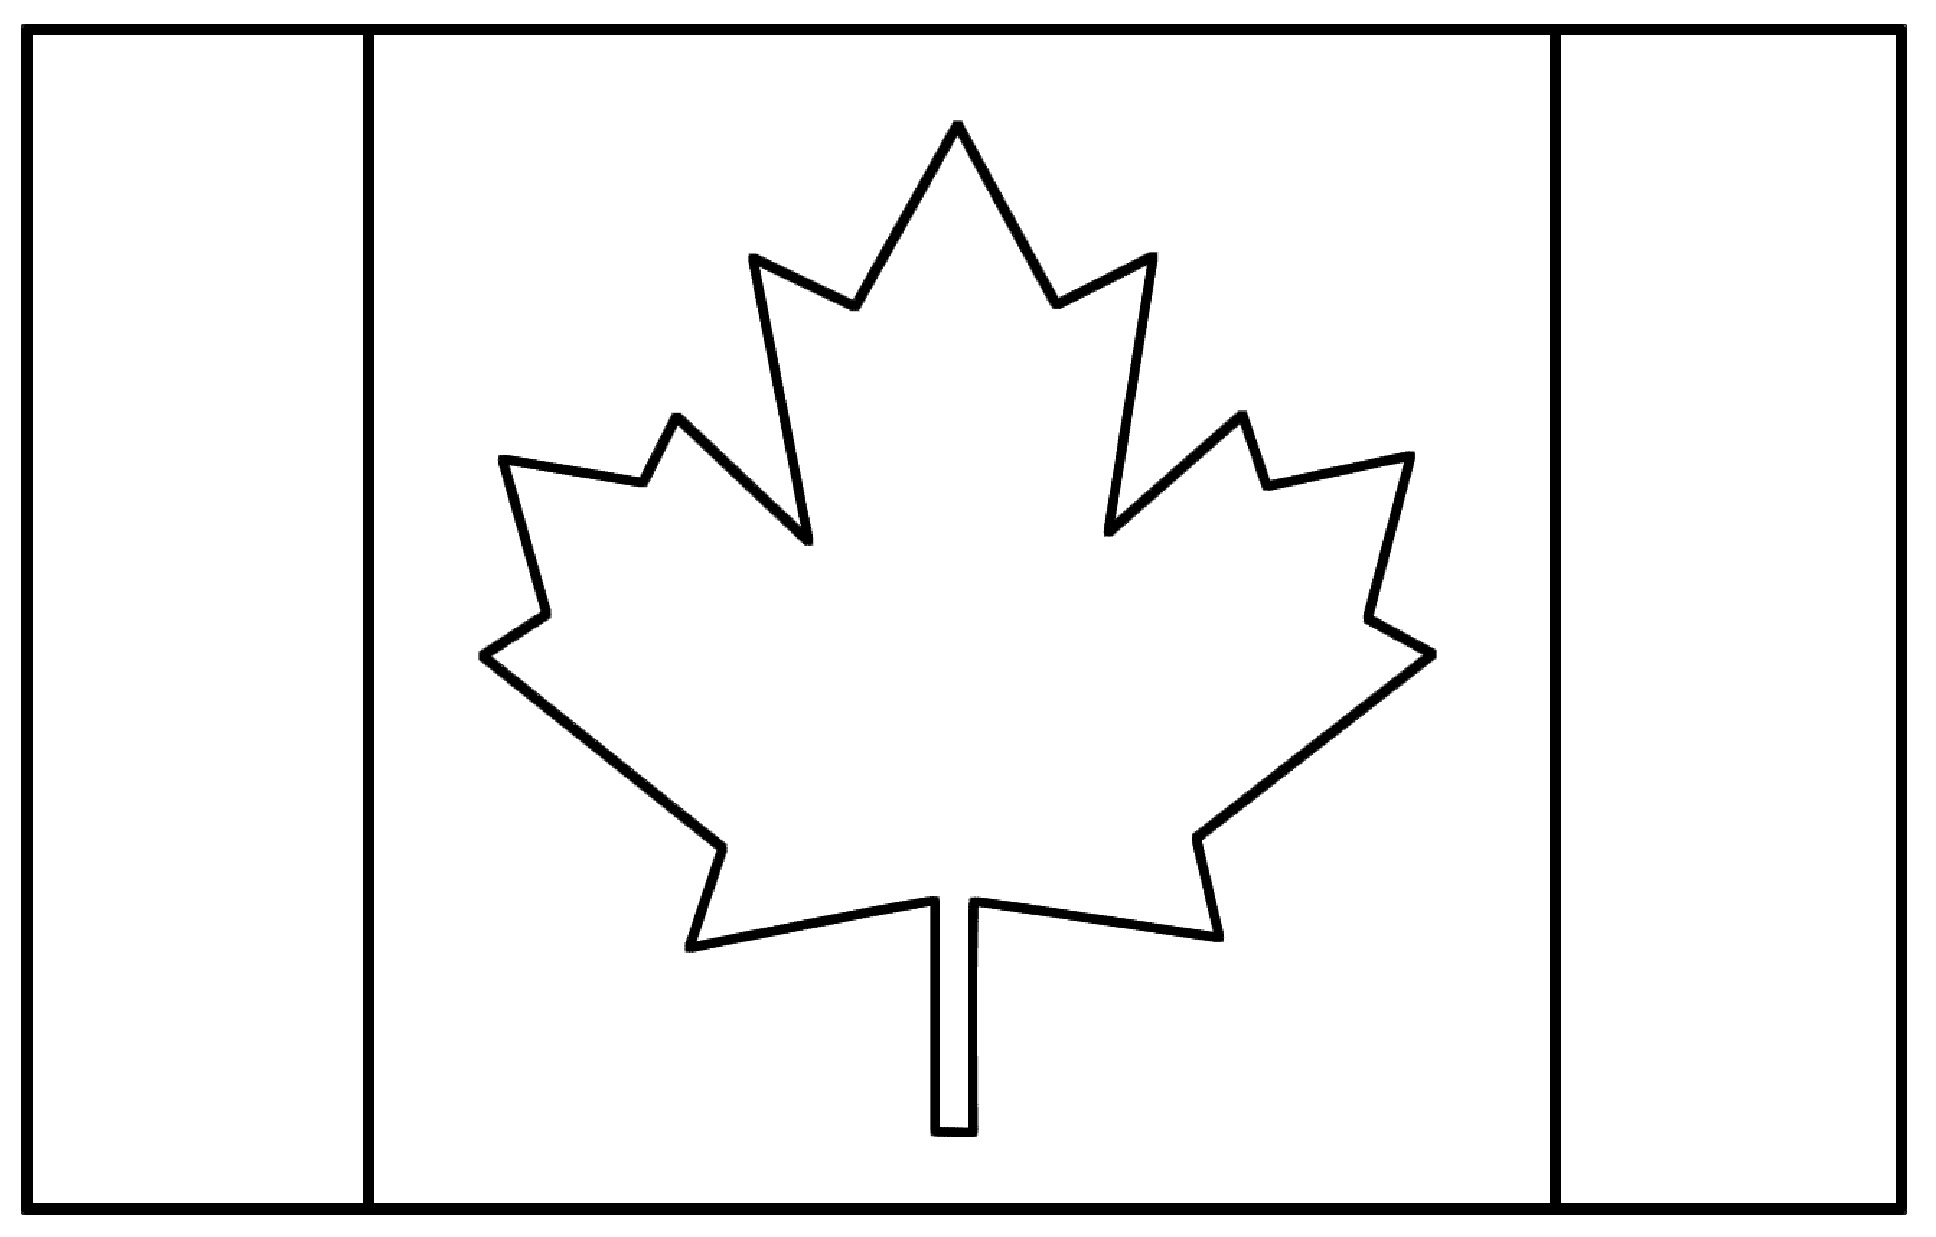 Flag canada - Flags Coloring pages for kids to print & color